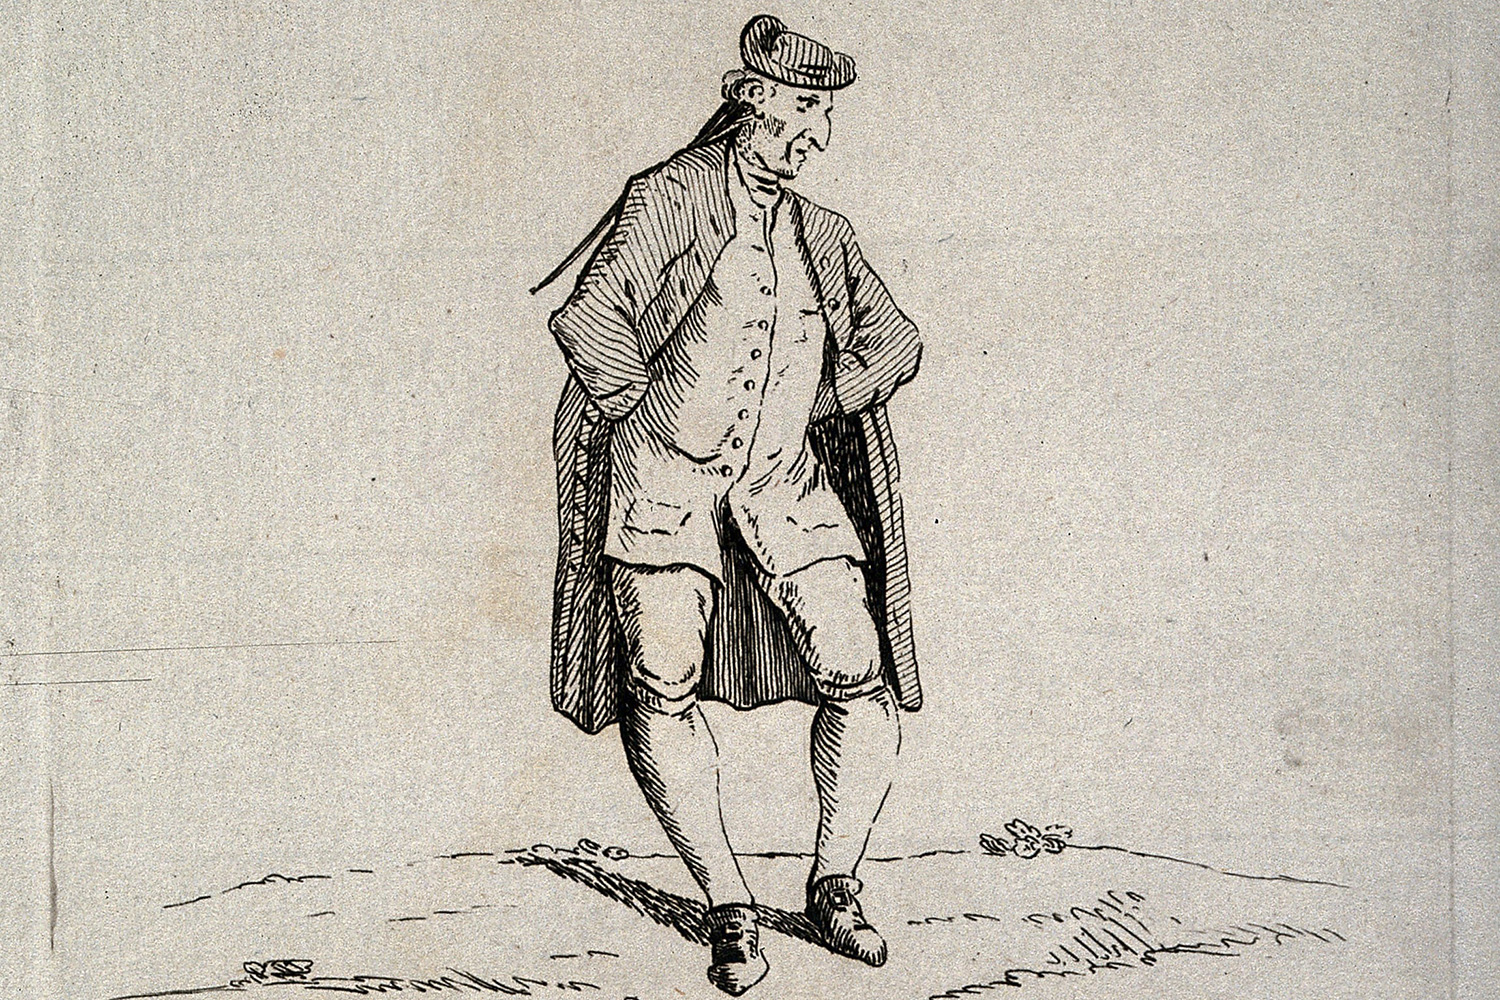 The etching shows a fashionably dressed man standing in a peculiar way.